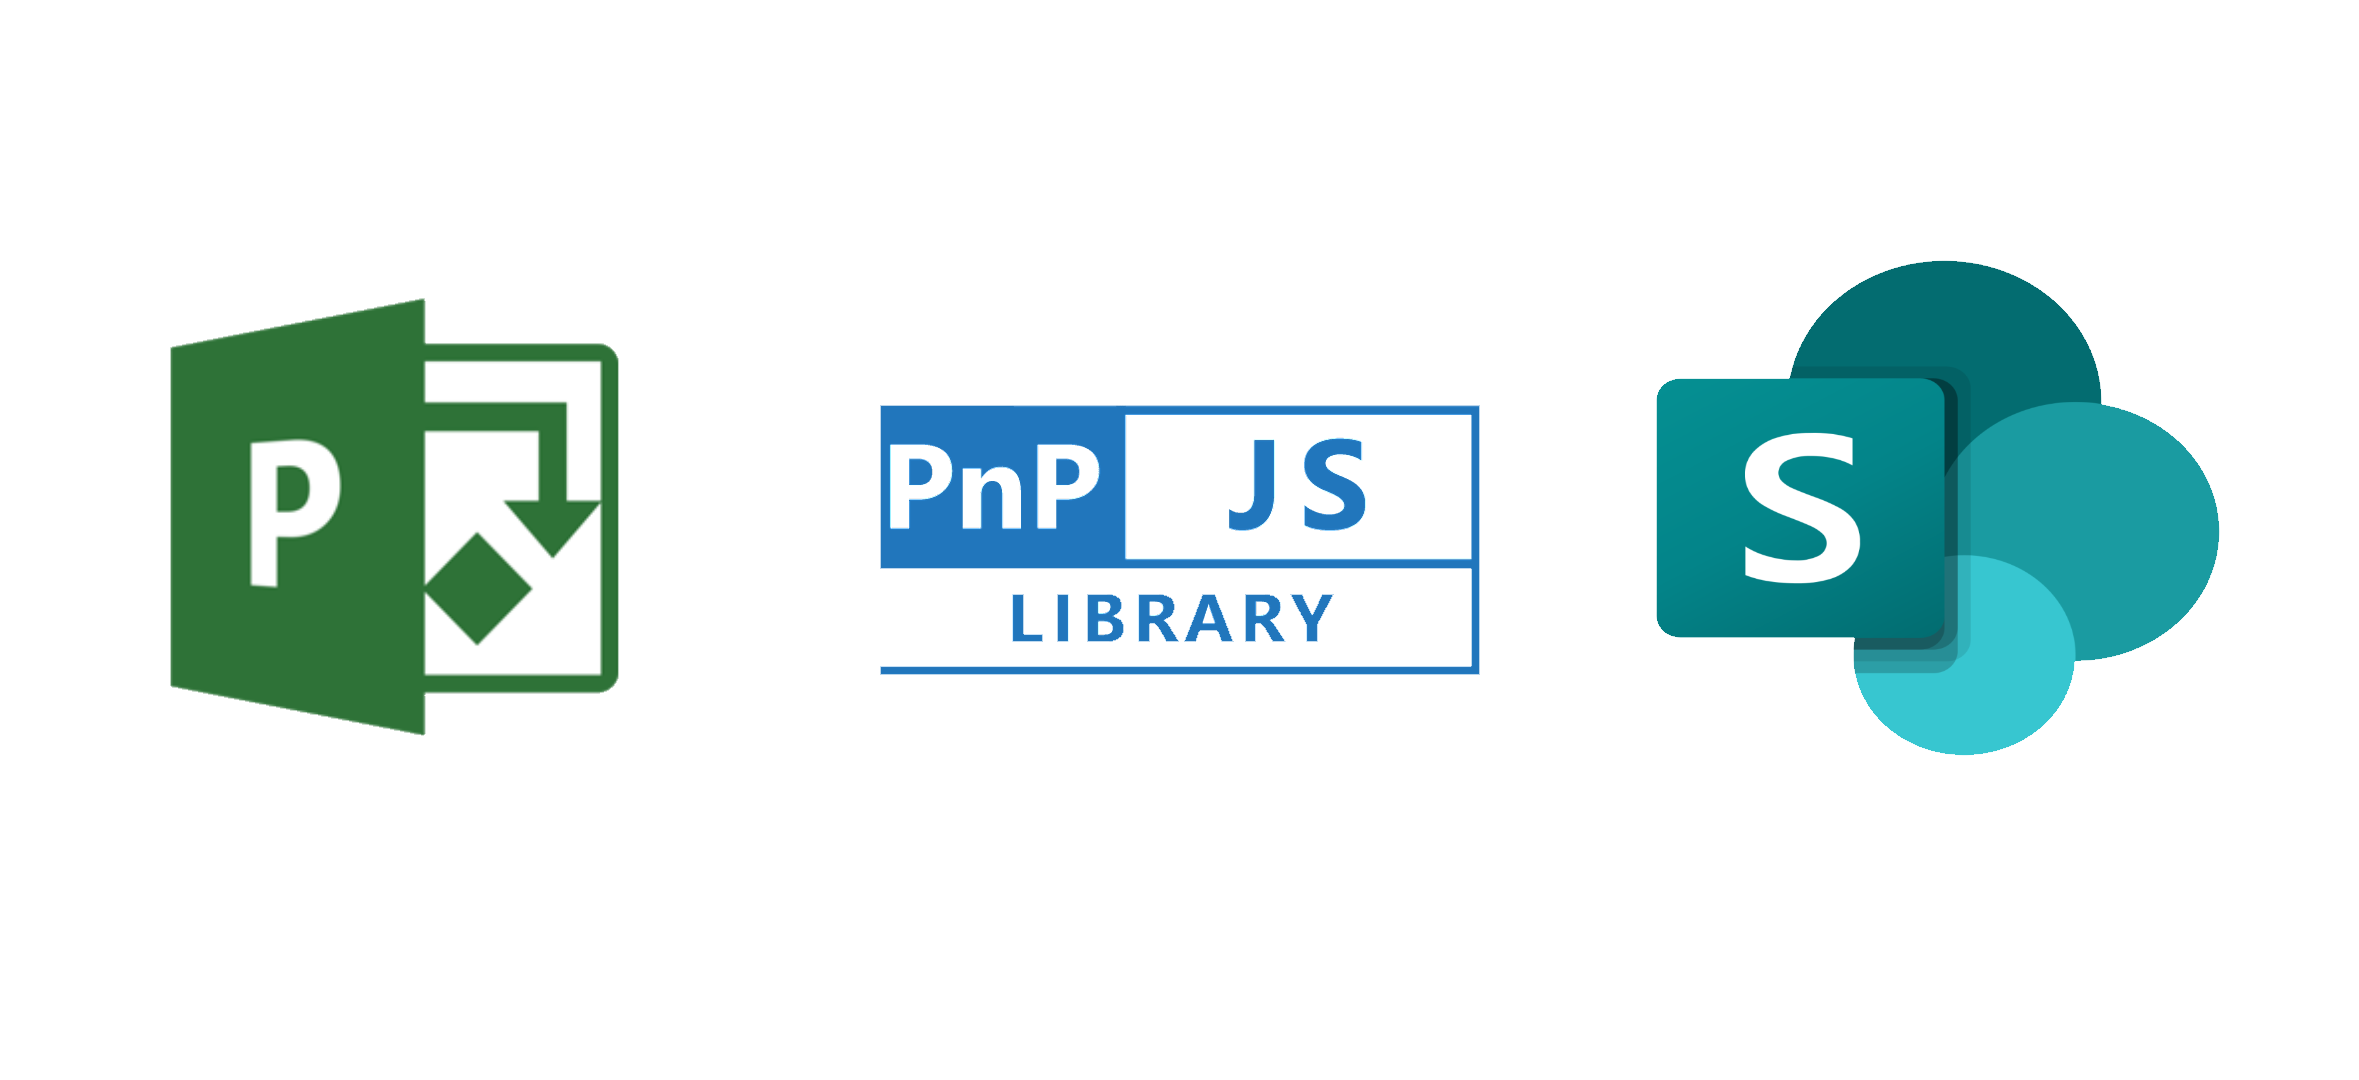 SPFx solution using PnPjs for Project Online REST API